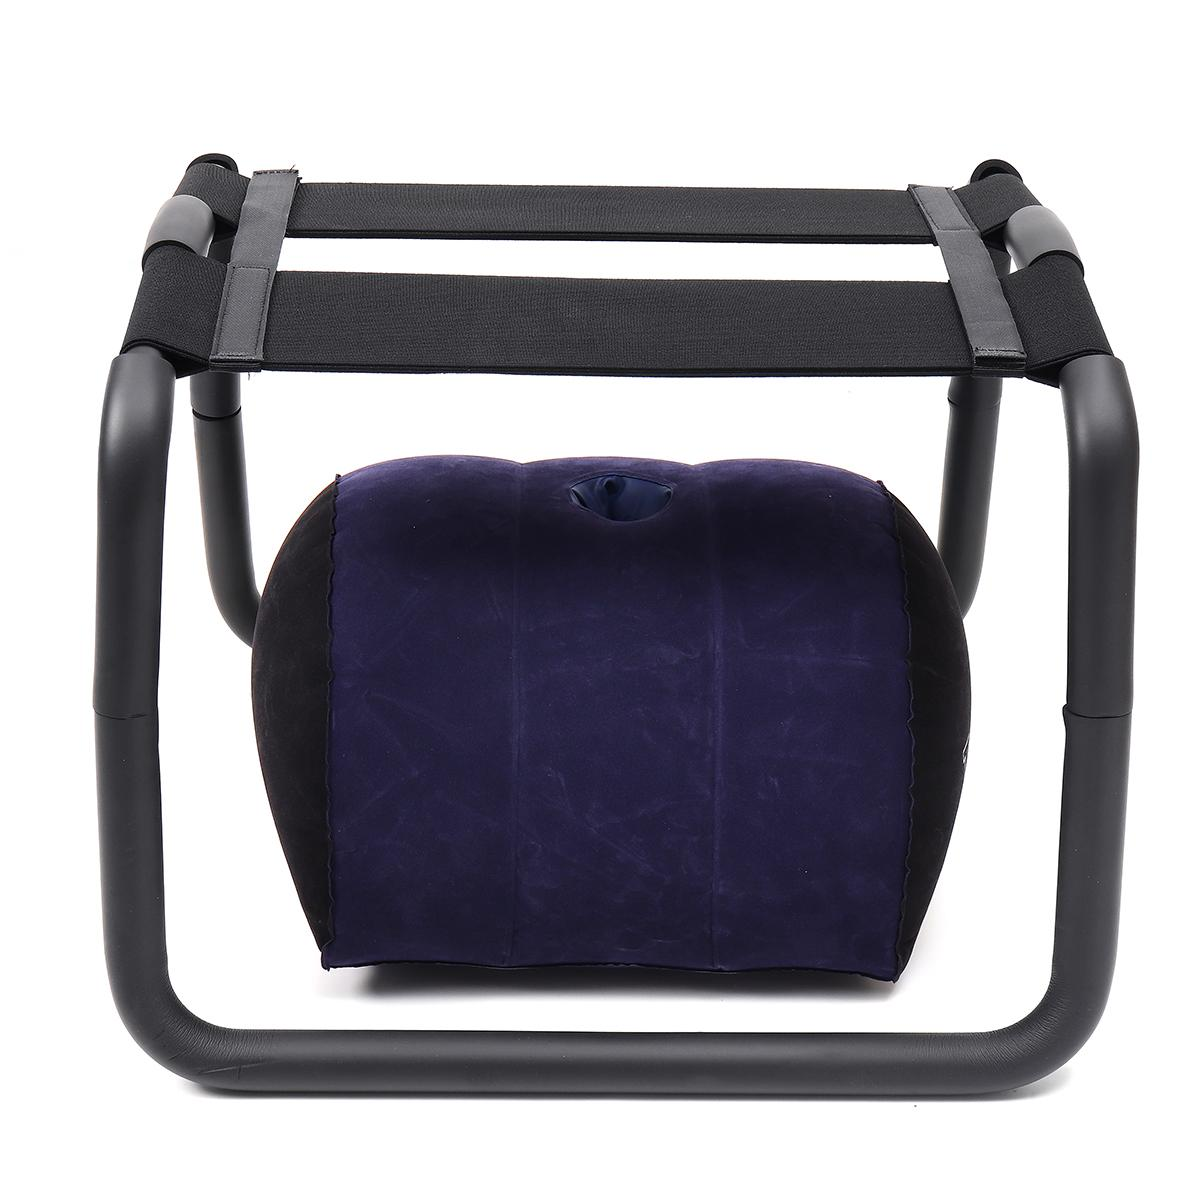 pilates chair for sale lightweight in a bag equipment online brands prices